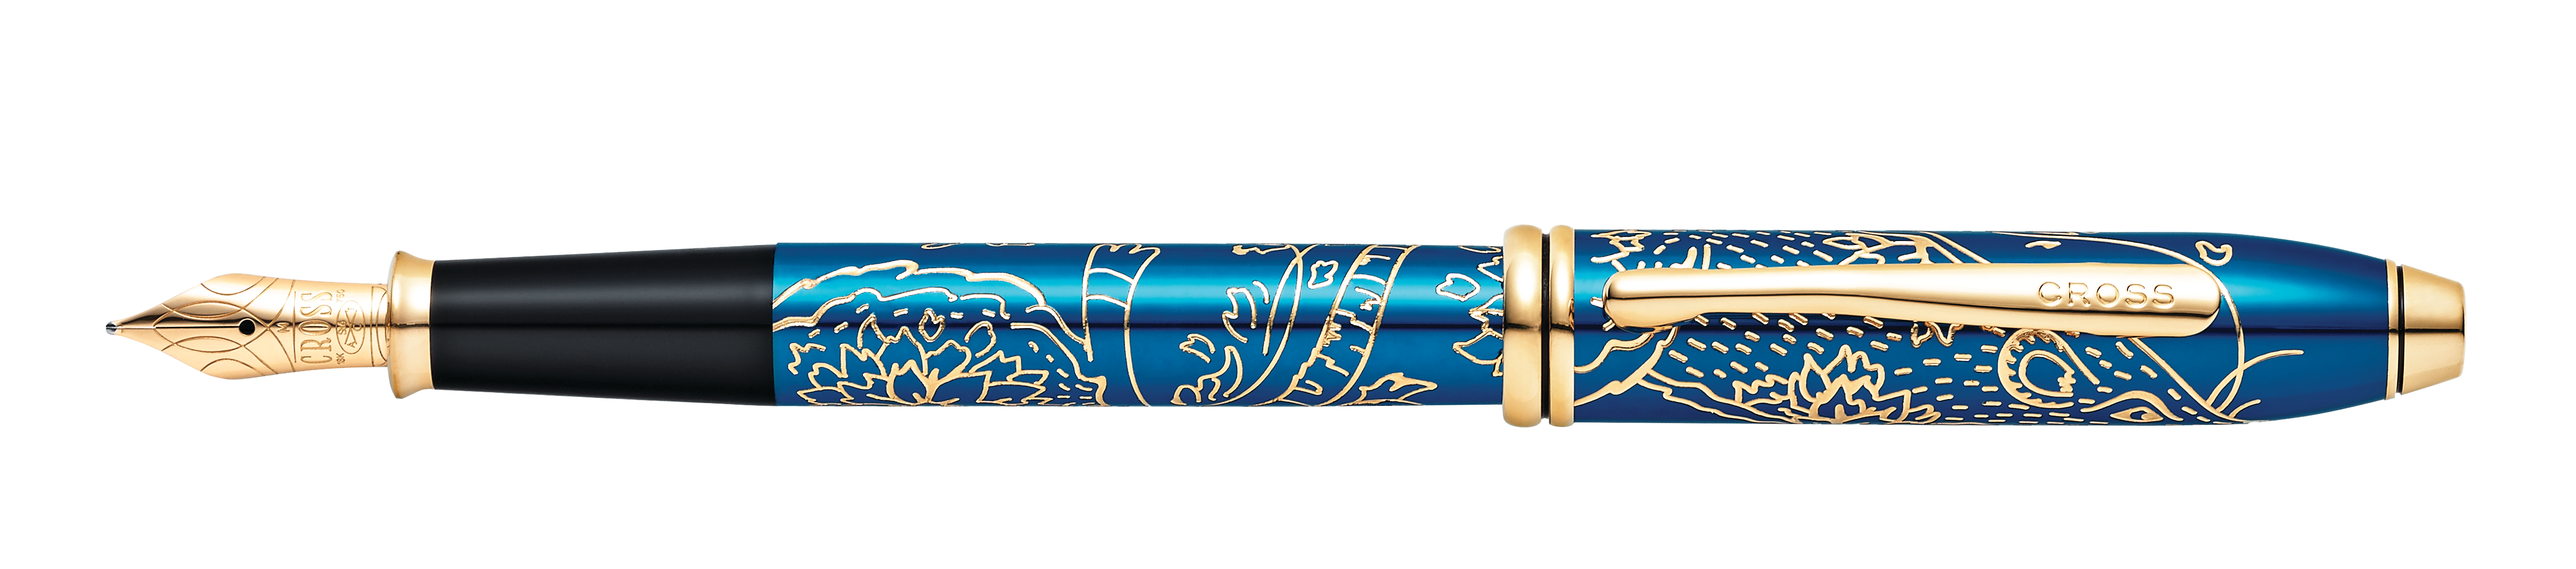 Townsend 2020 Year of the Rat Special-Edition Fountain Pen